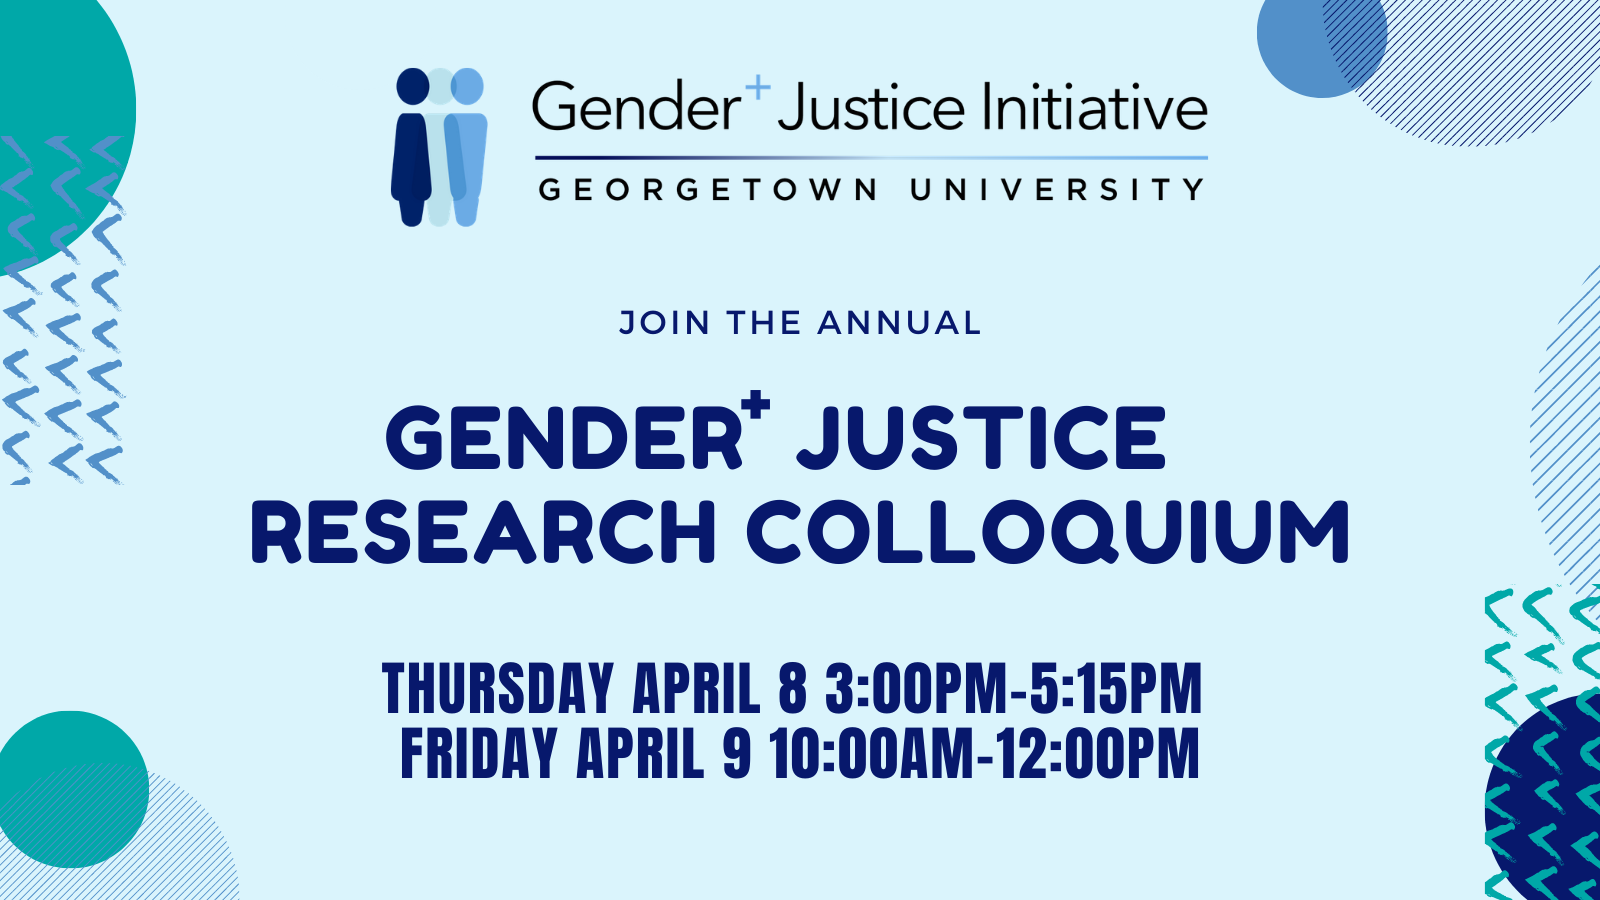 Flyer for Gender+ Justice Colloquium 2021 - light blue background and date and details in navy blue